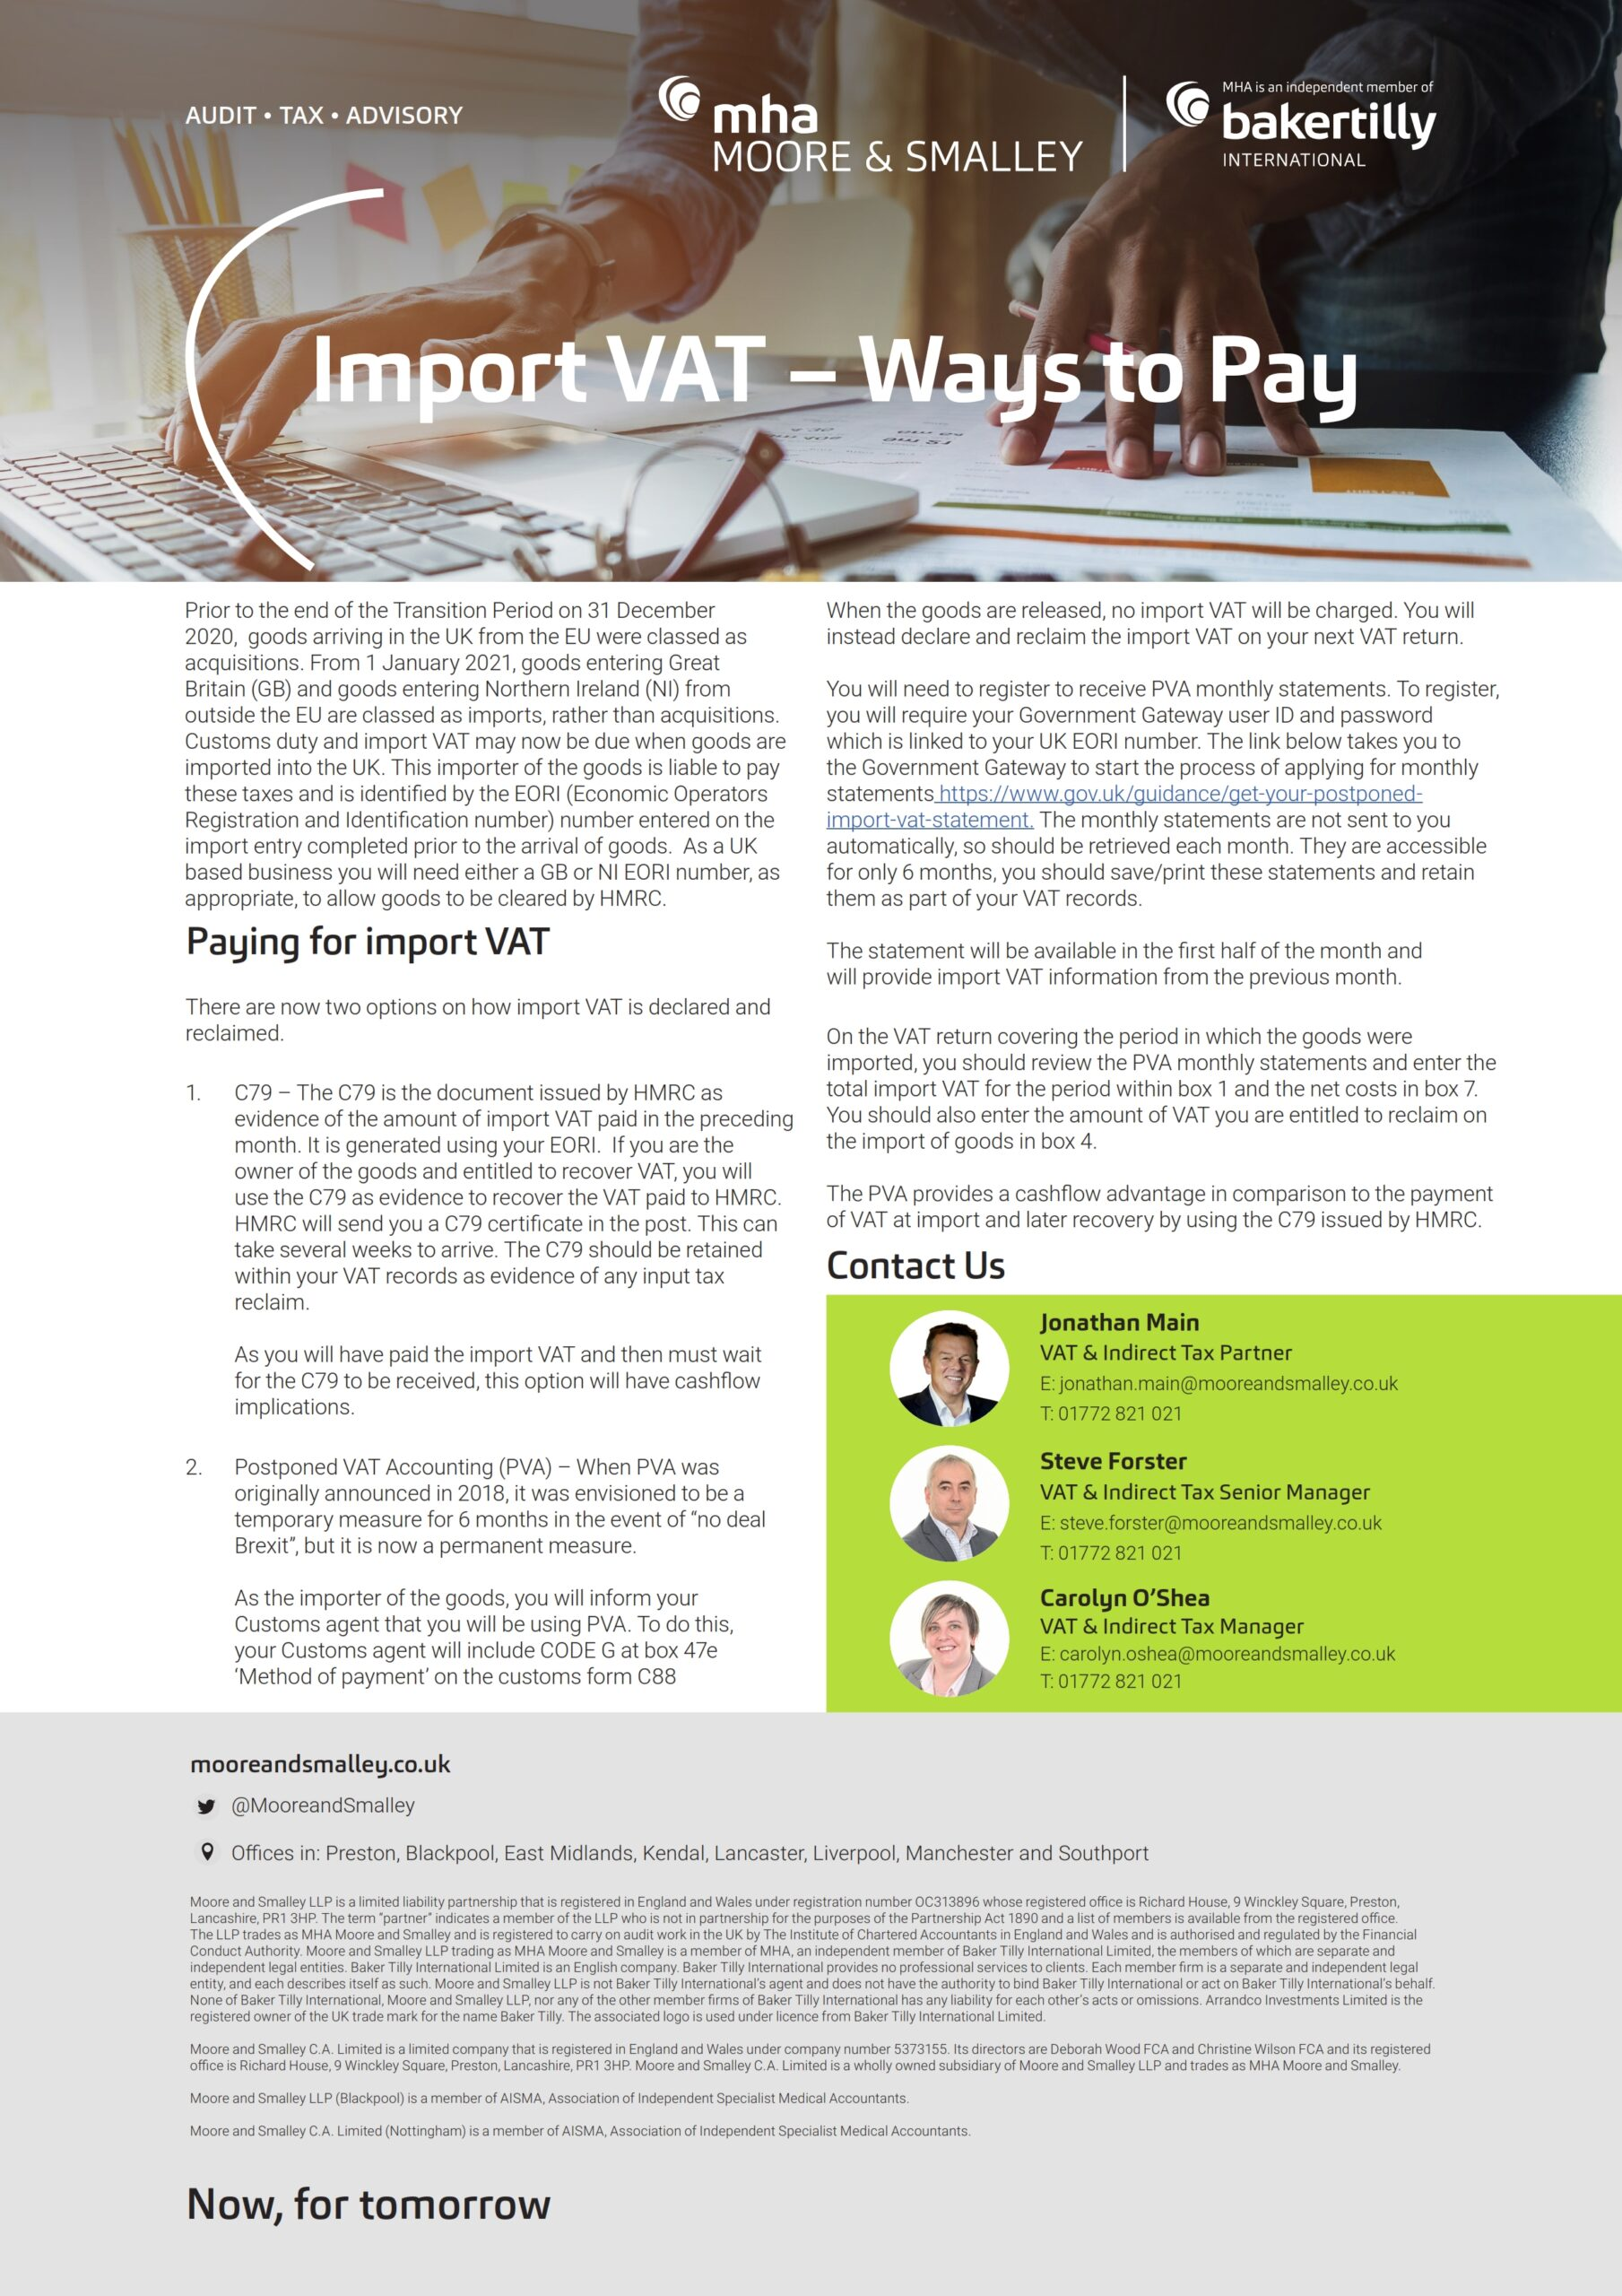 Import VAT – Ways to Pay